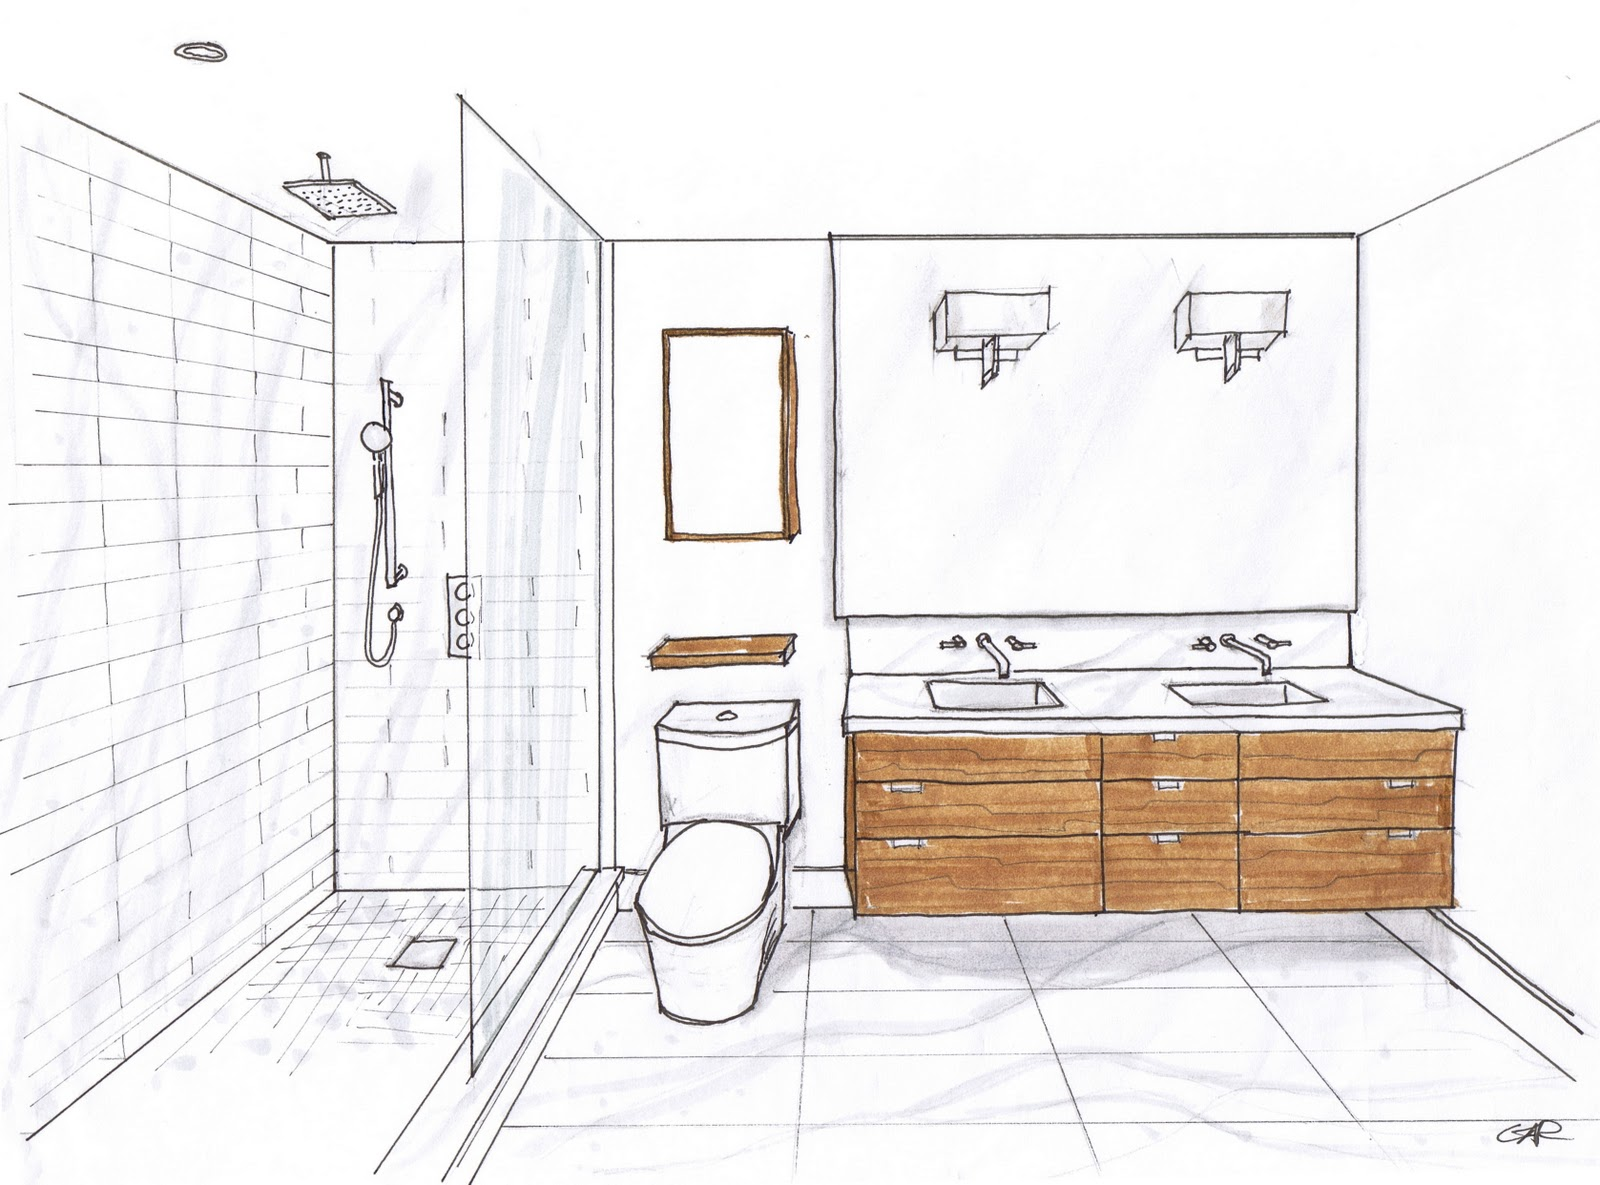 Creed 70 39 s bungalow bathroom designs for Easy room planner